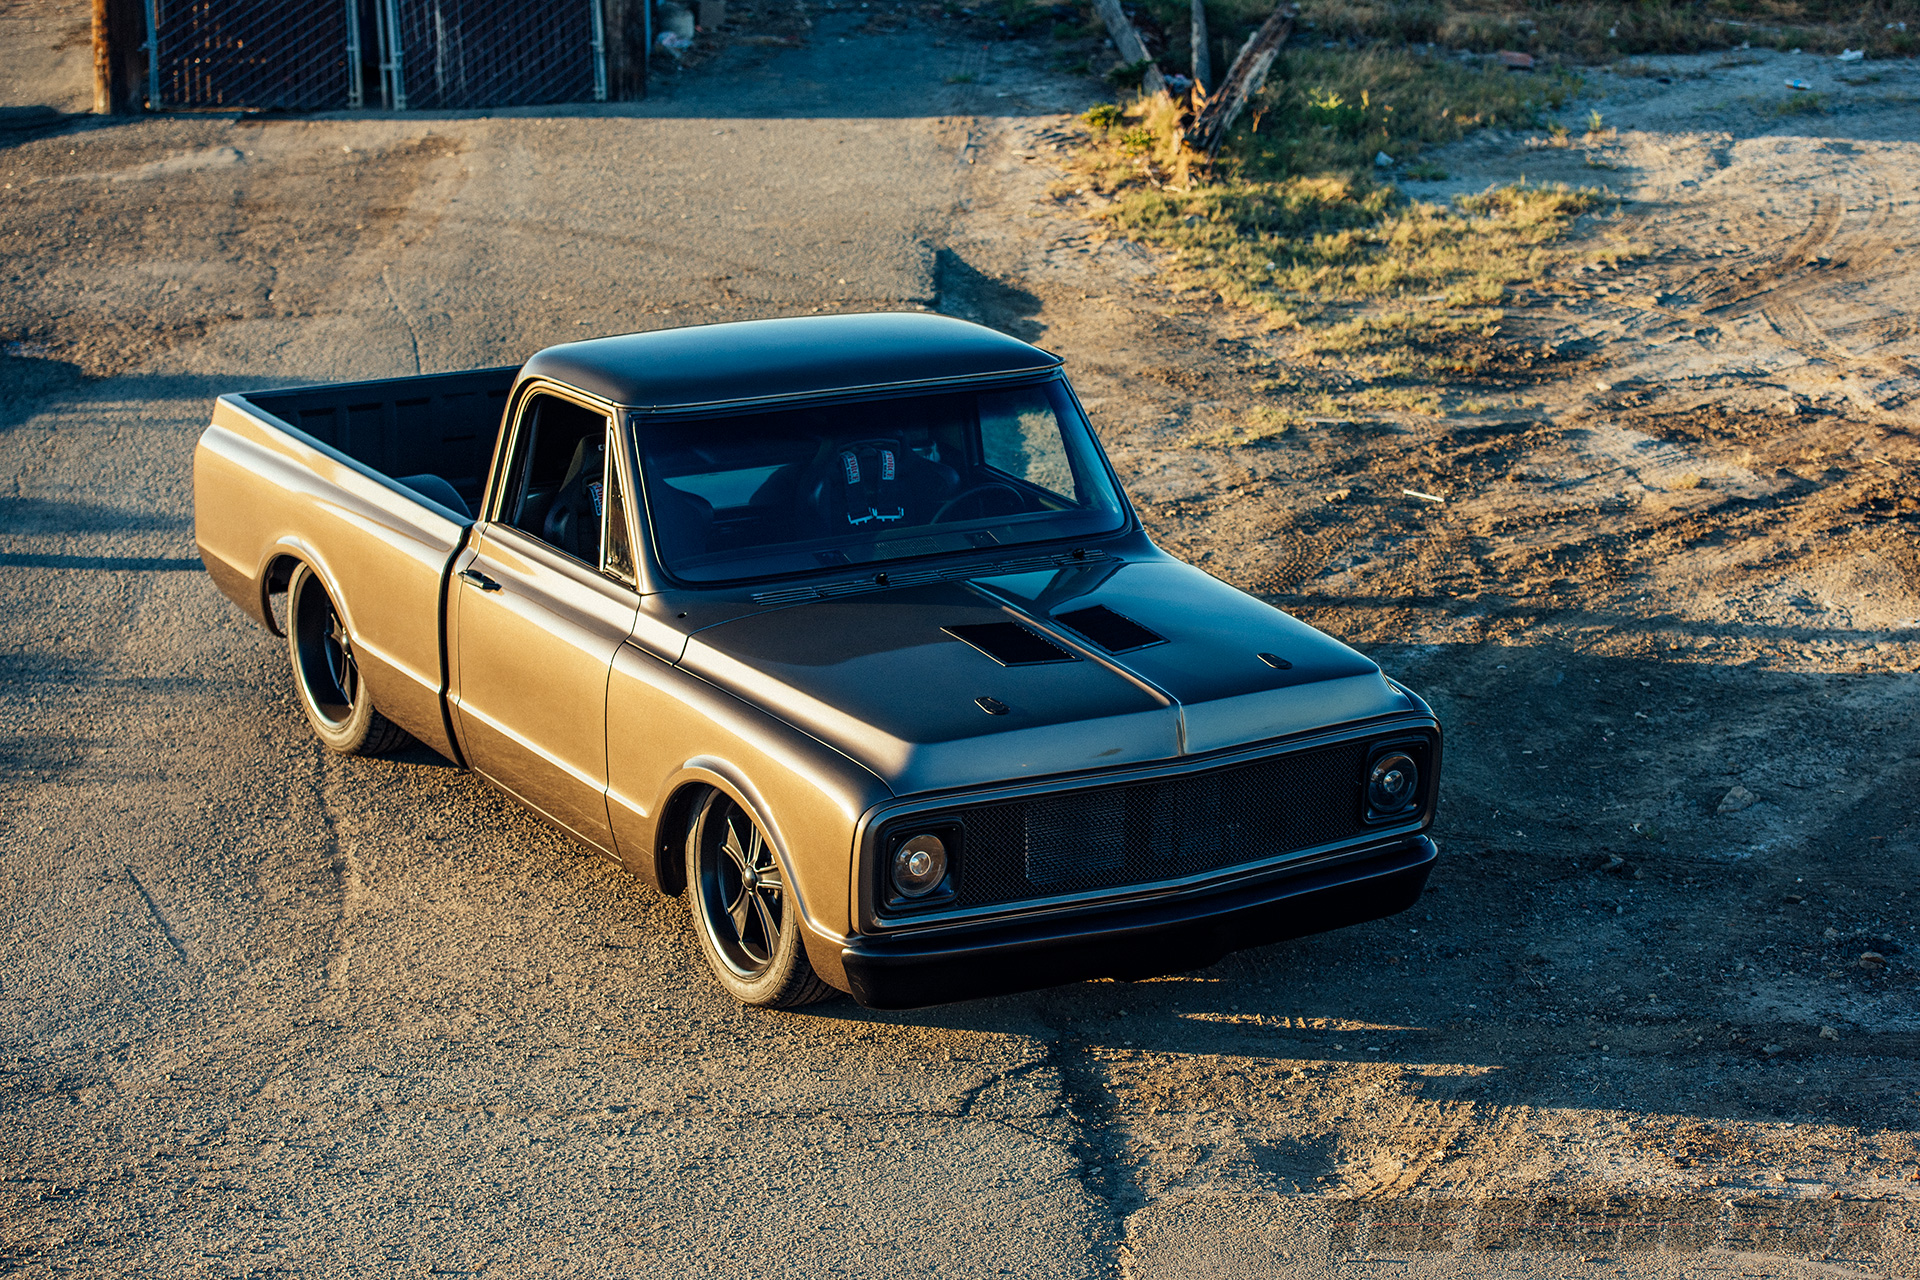 Third Time's The Charm: Dustin Reed's 1972 Chevy C10, Top